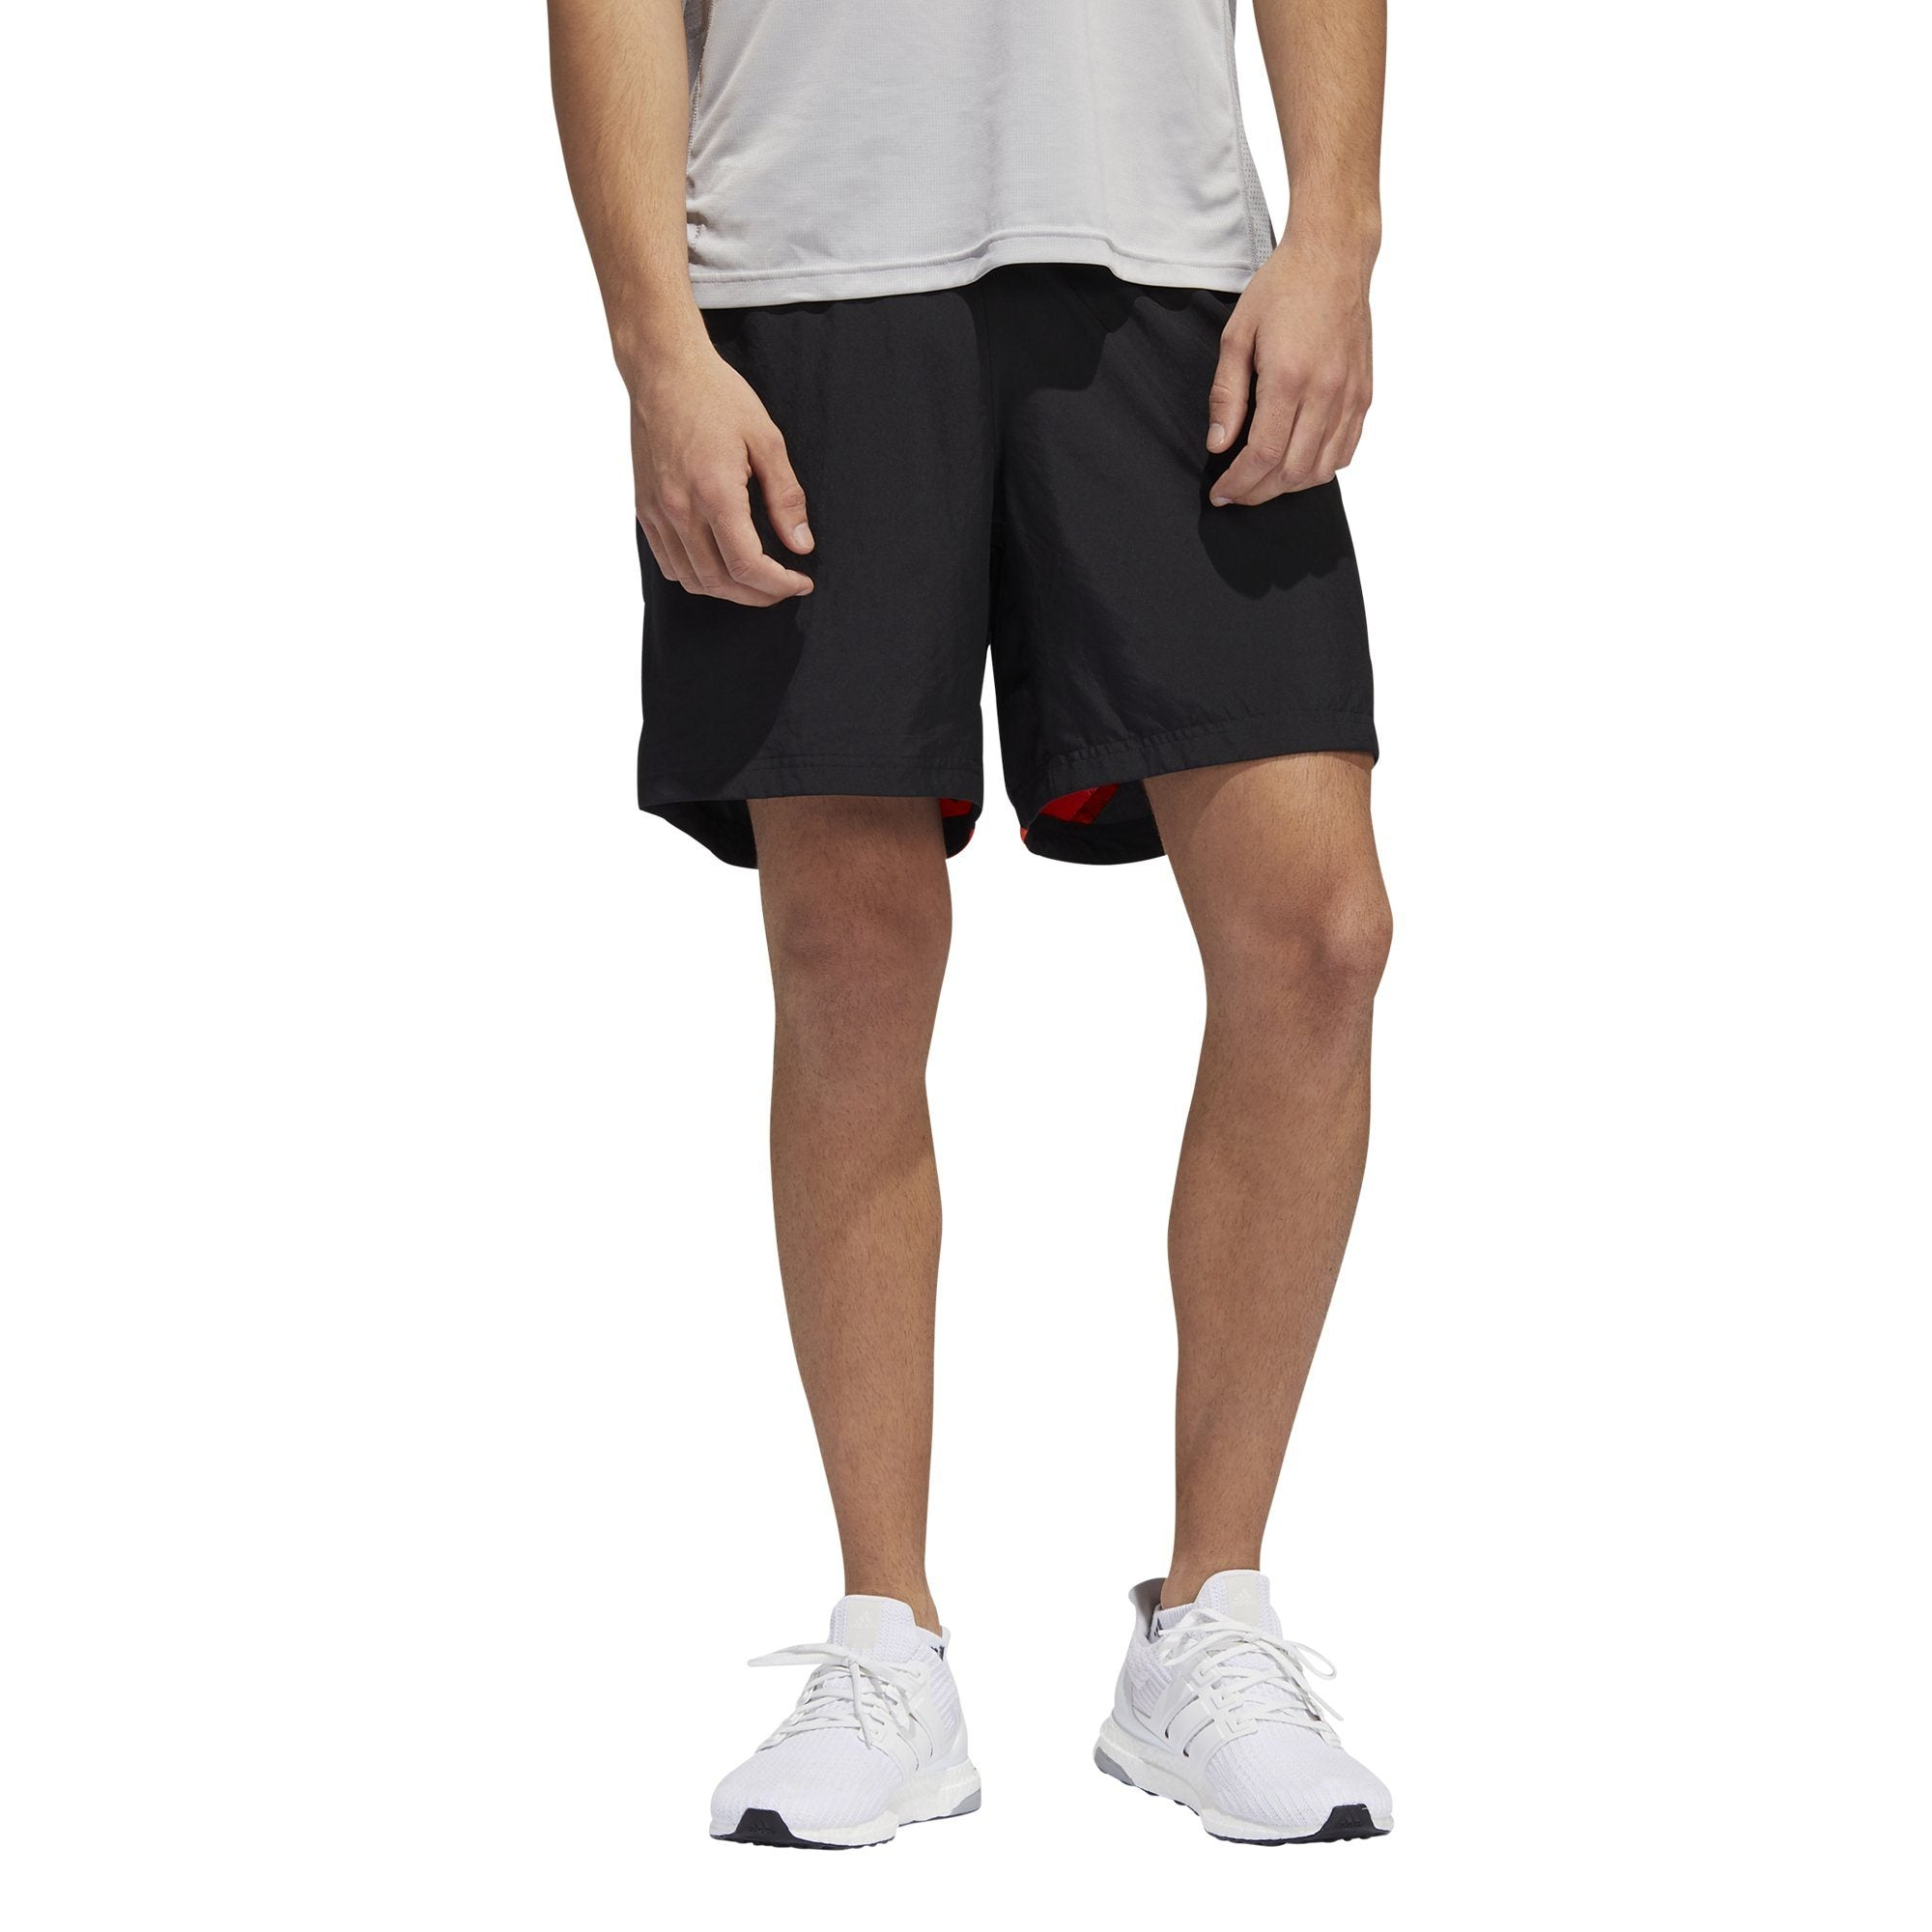 Adidas Mens Own the Run Shorts - black/active orange SP-APPARELSHORTS-MENS Adidas